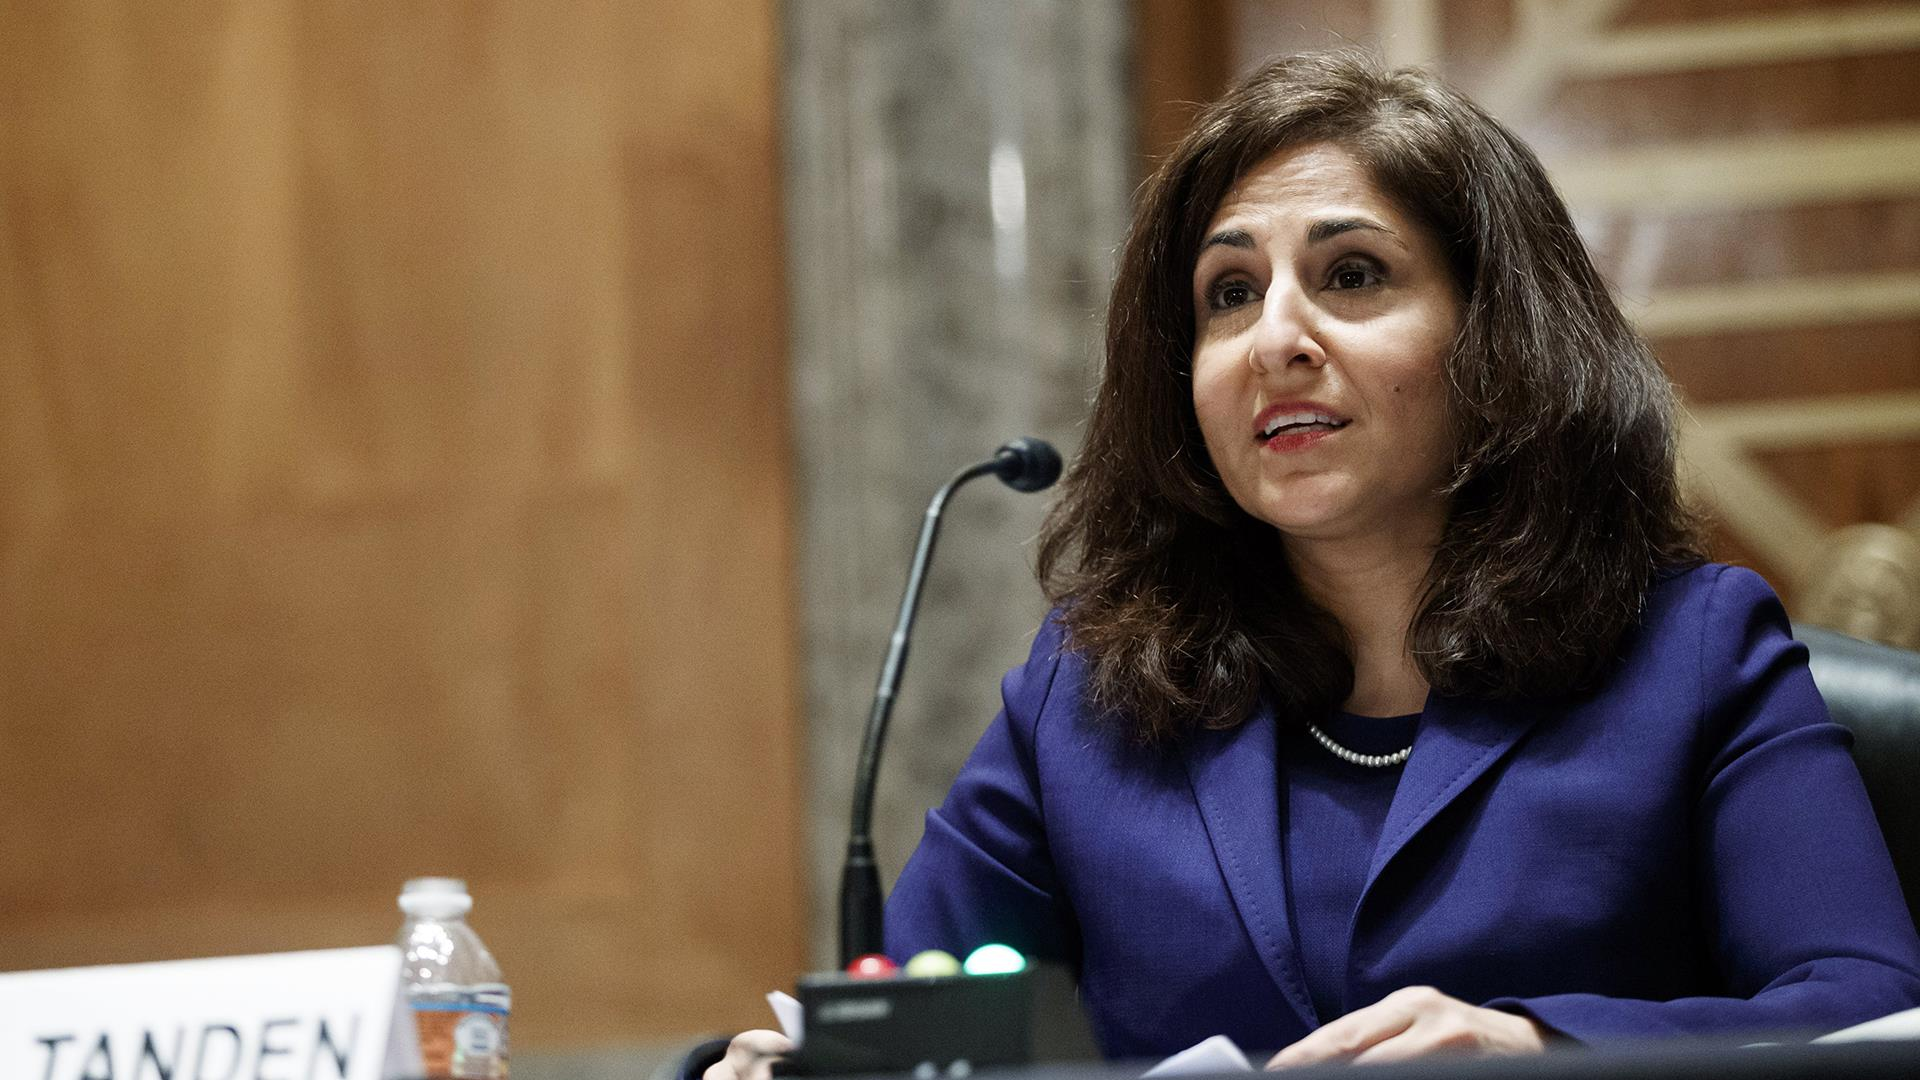 The US administration has appointed Indian-American Neera Tanden as a senior adviser to President Joe Biden at White House.